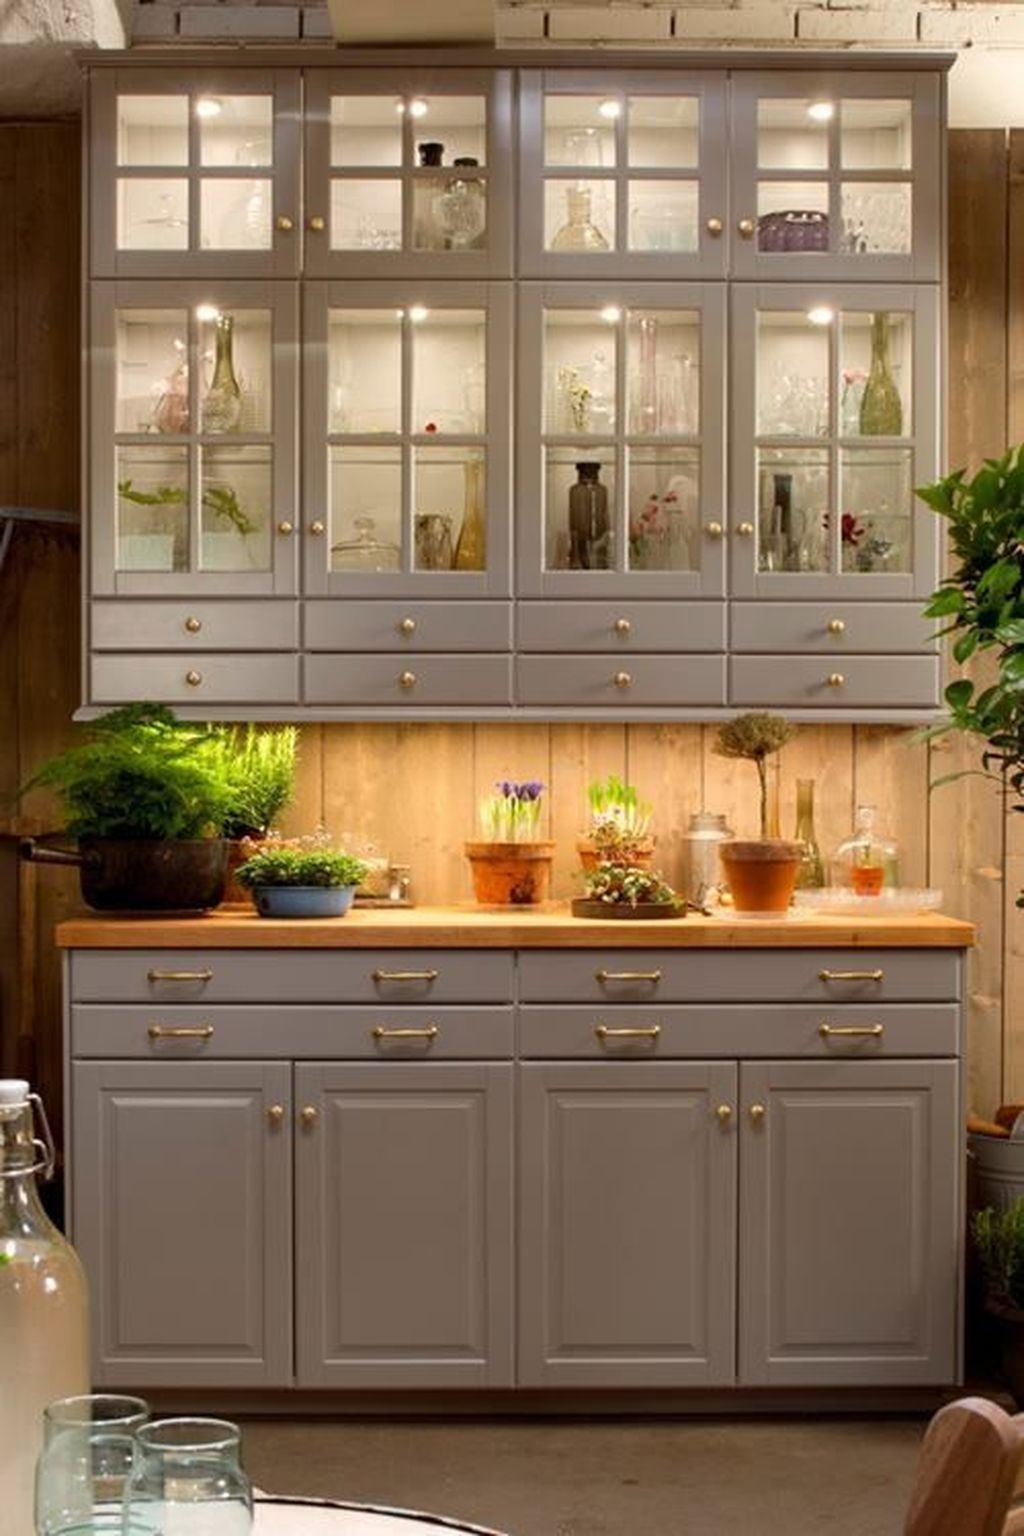 20 Awesome Georgian Kitchen Style Ideas For Your Amazing Home